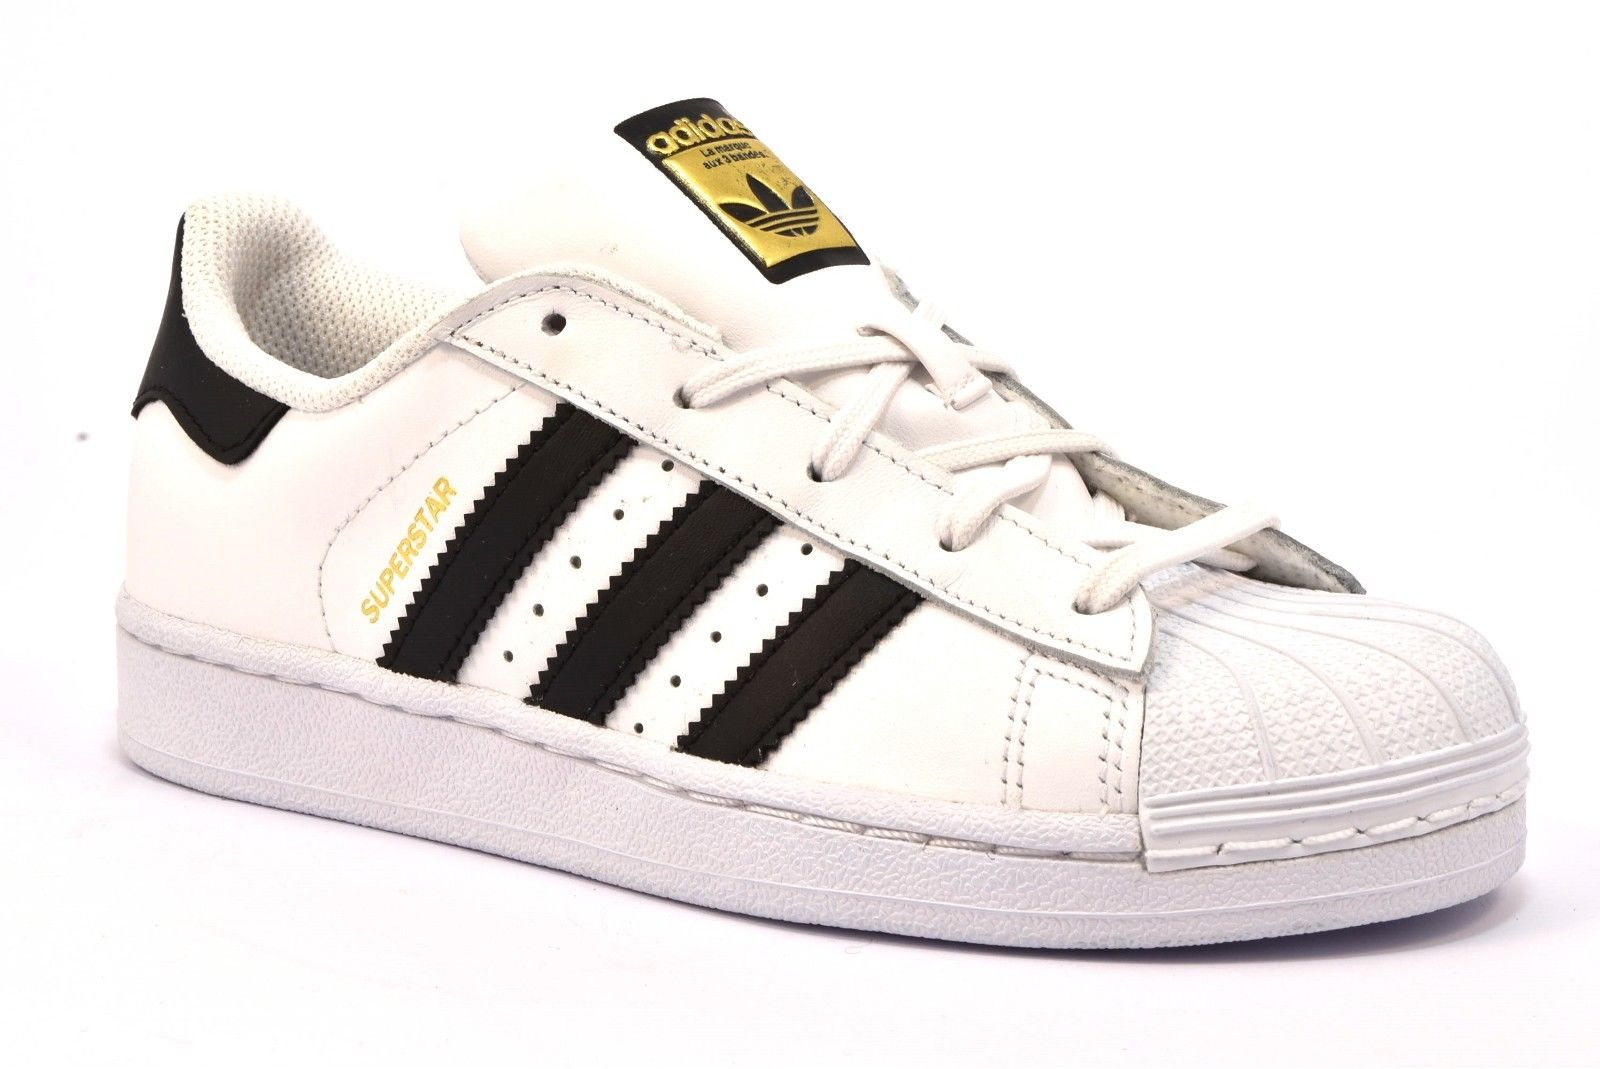 2adidas bimbo superstar 34